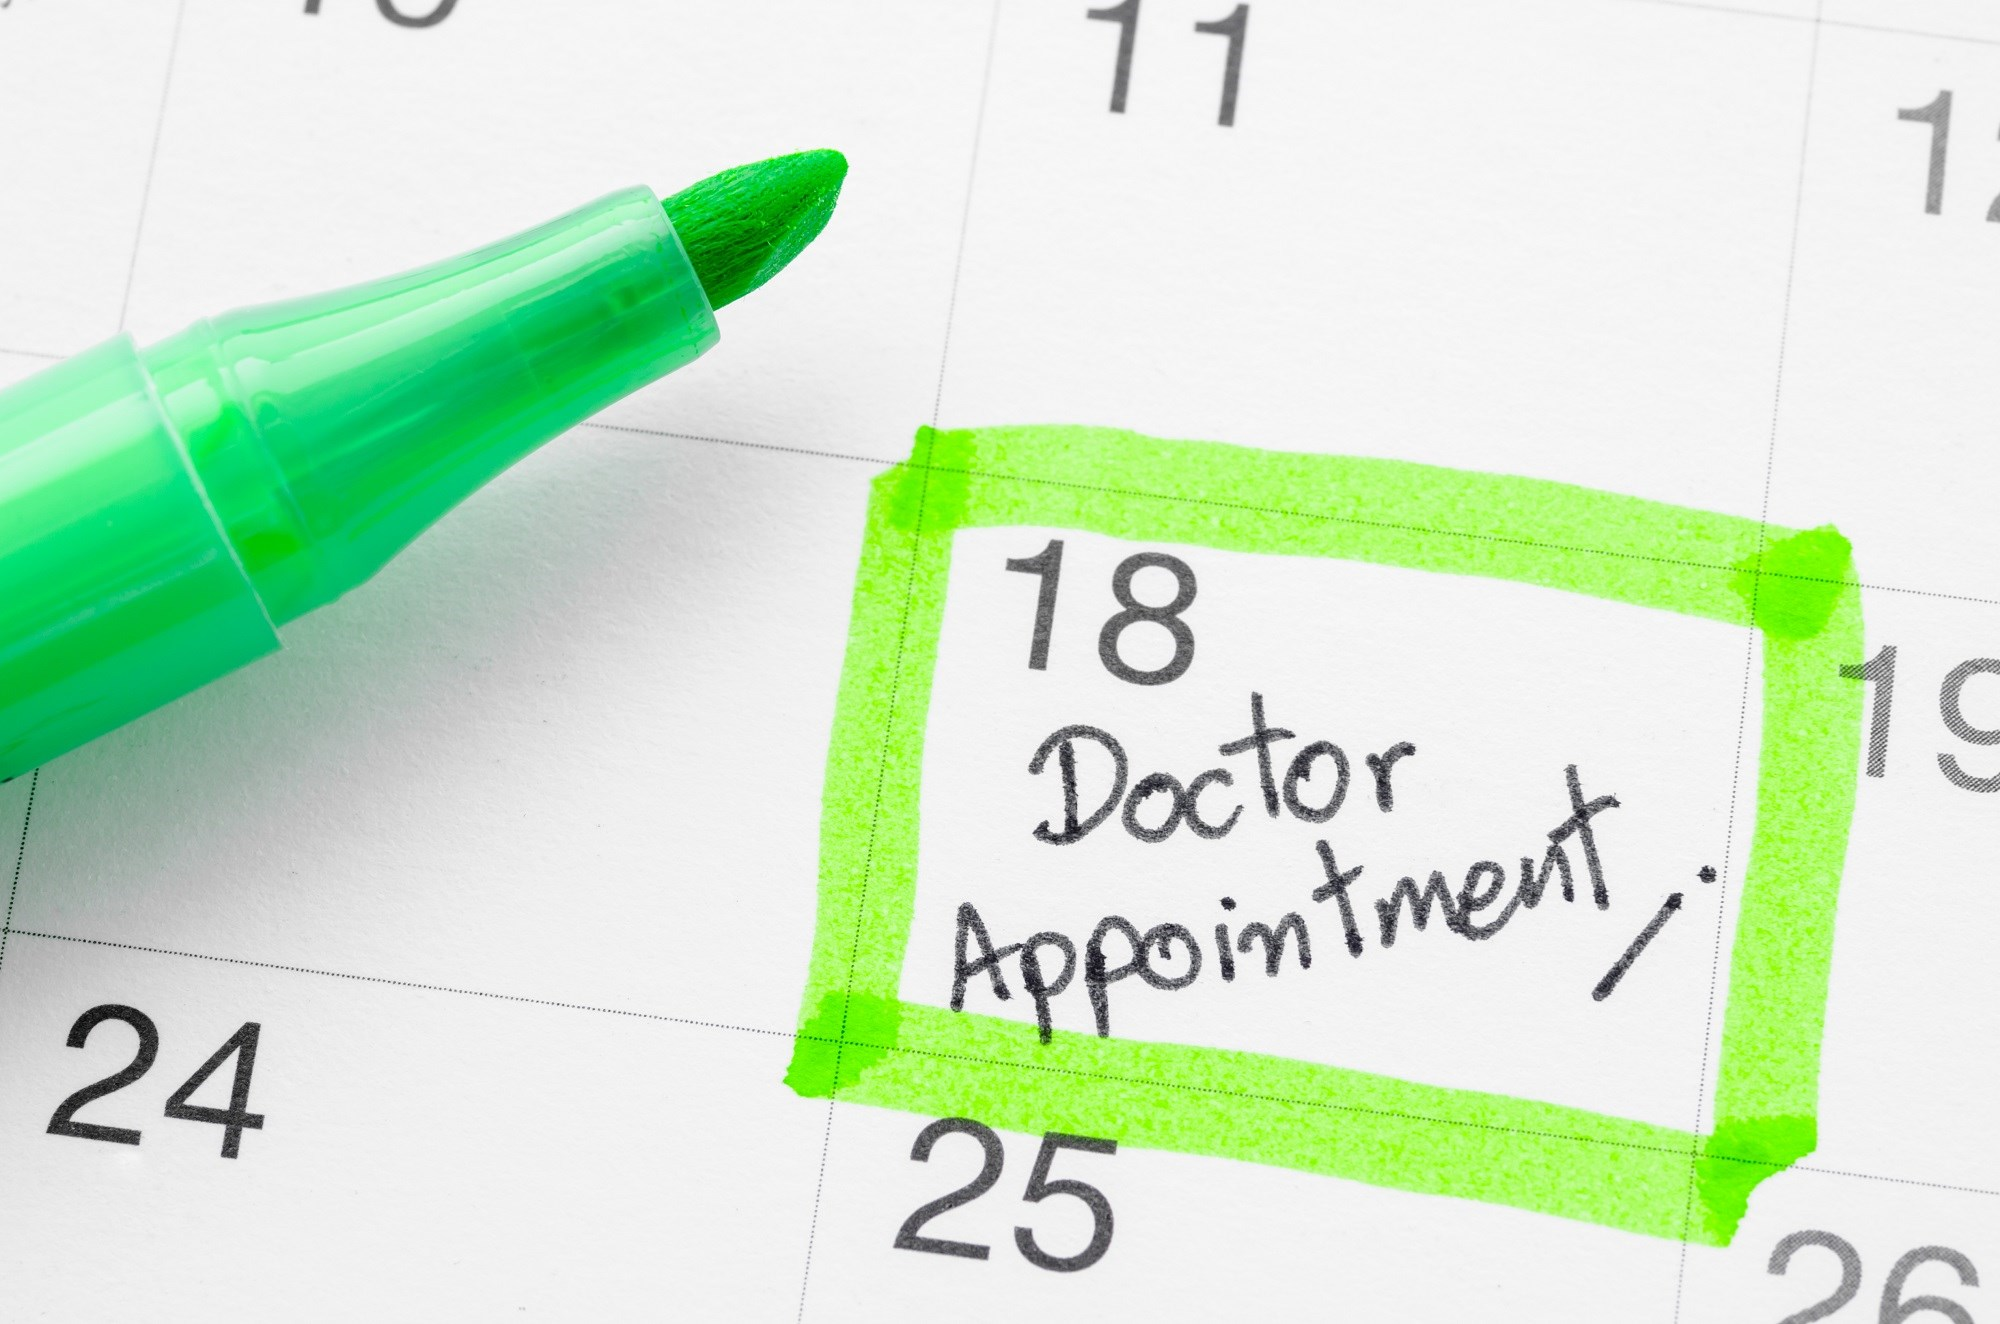 Missed General Practice Appointments Linked To Increased Morbidity, Mortality